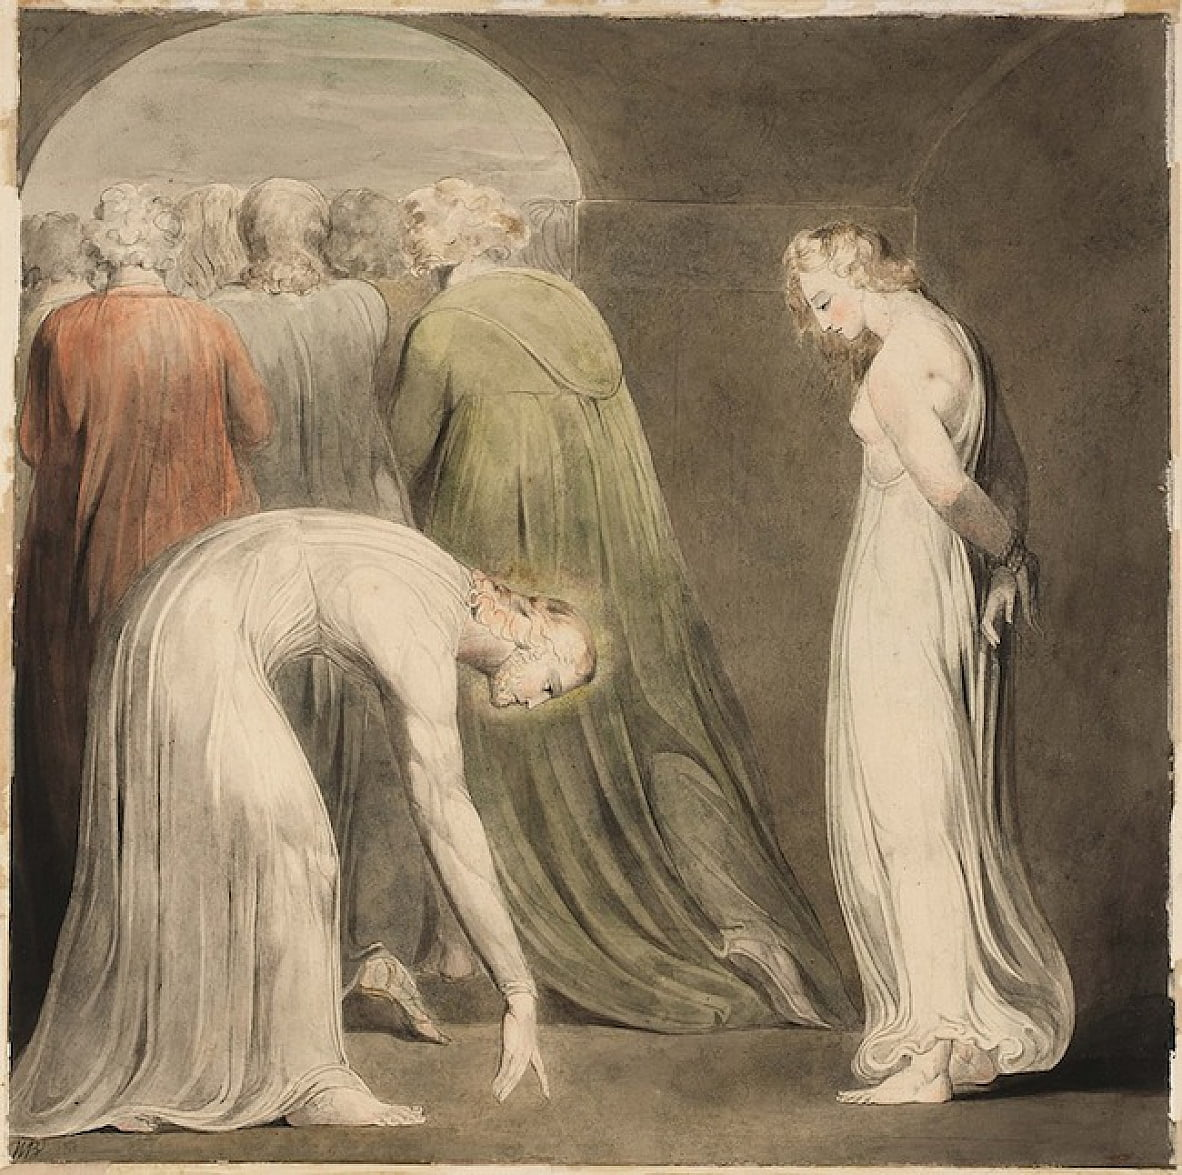 La donna presa in adulterio da William Blake